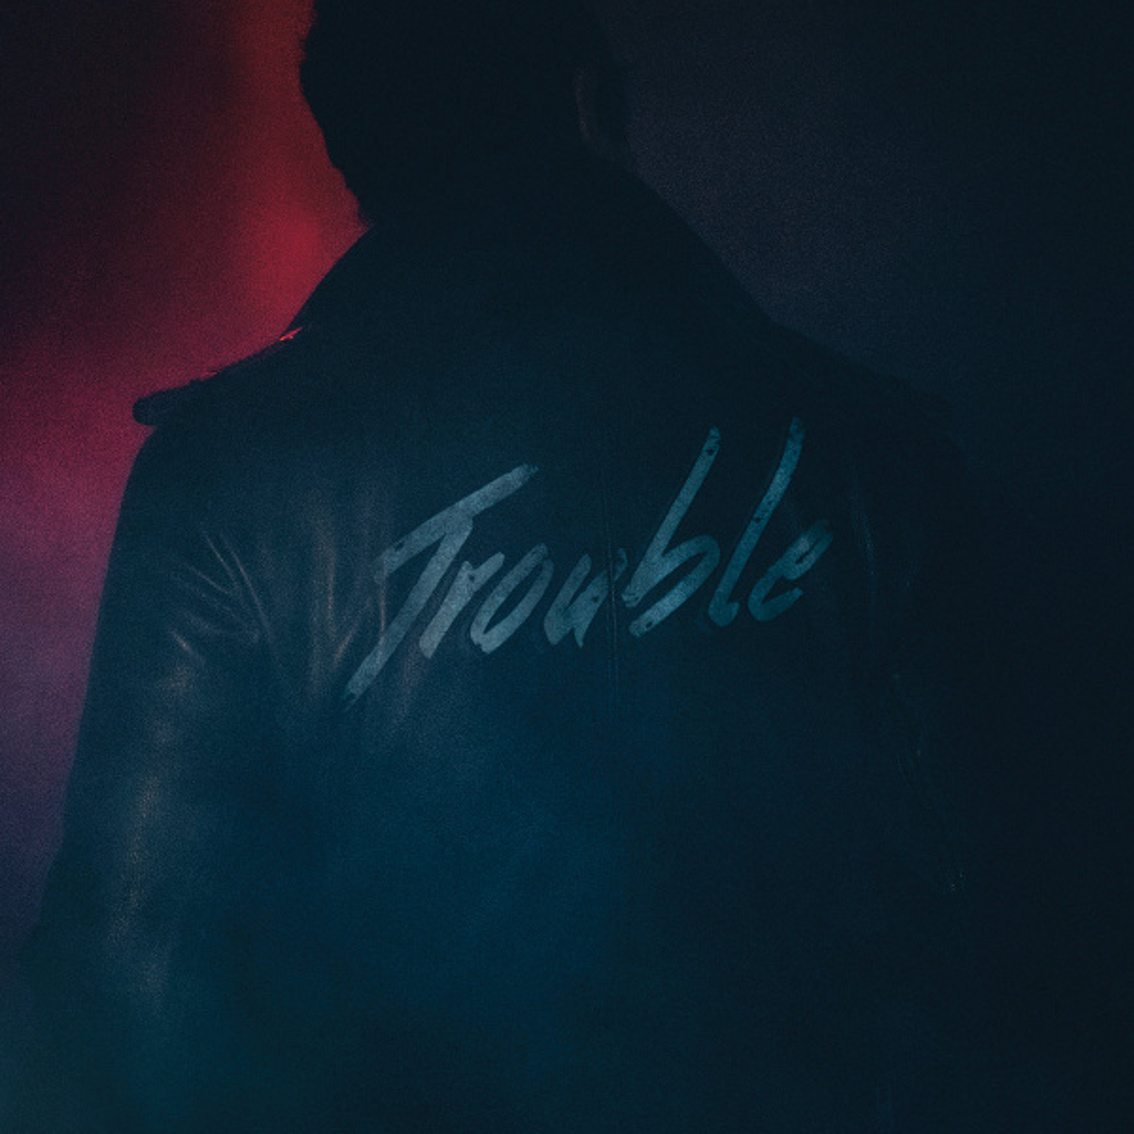 Twin Peaks tailored Trouble 2-track single'Snake Eyes' issued as 7 inch vinyl